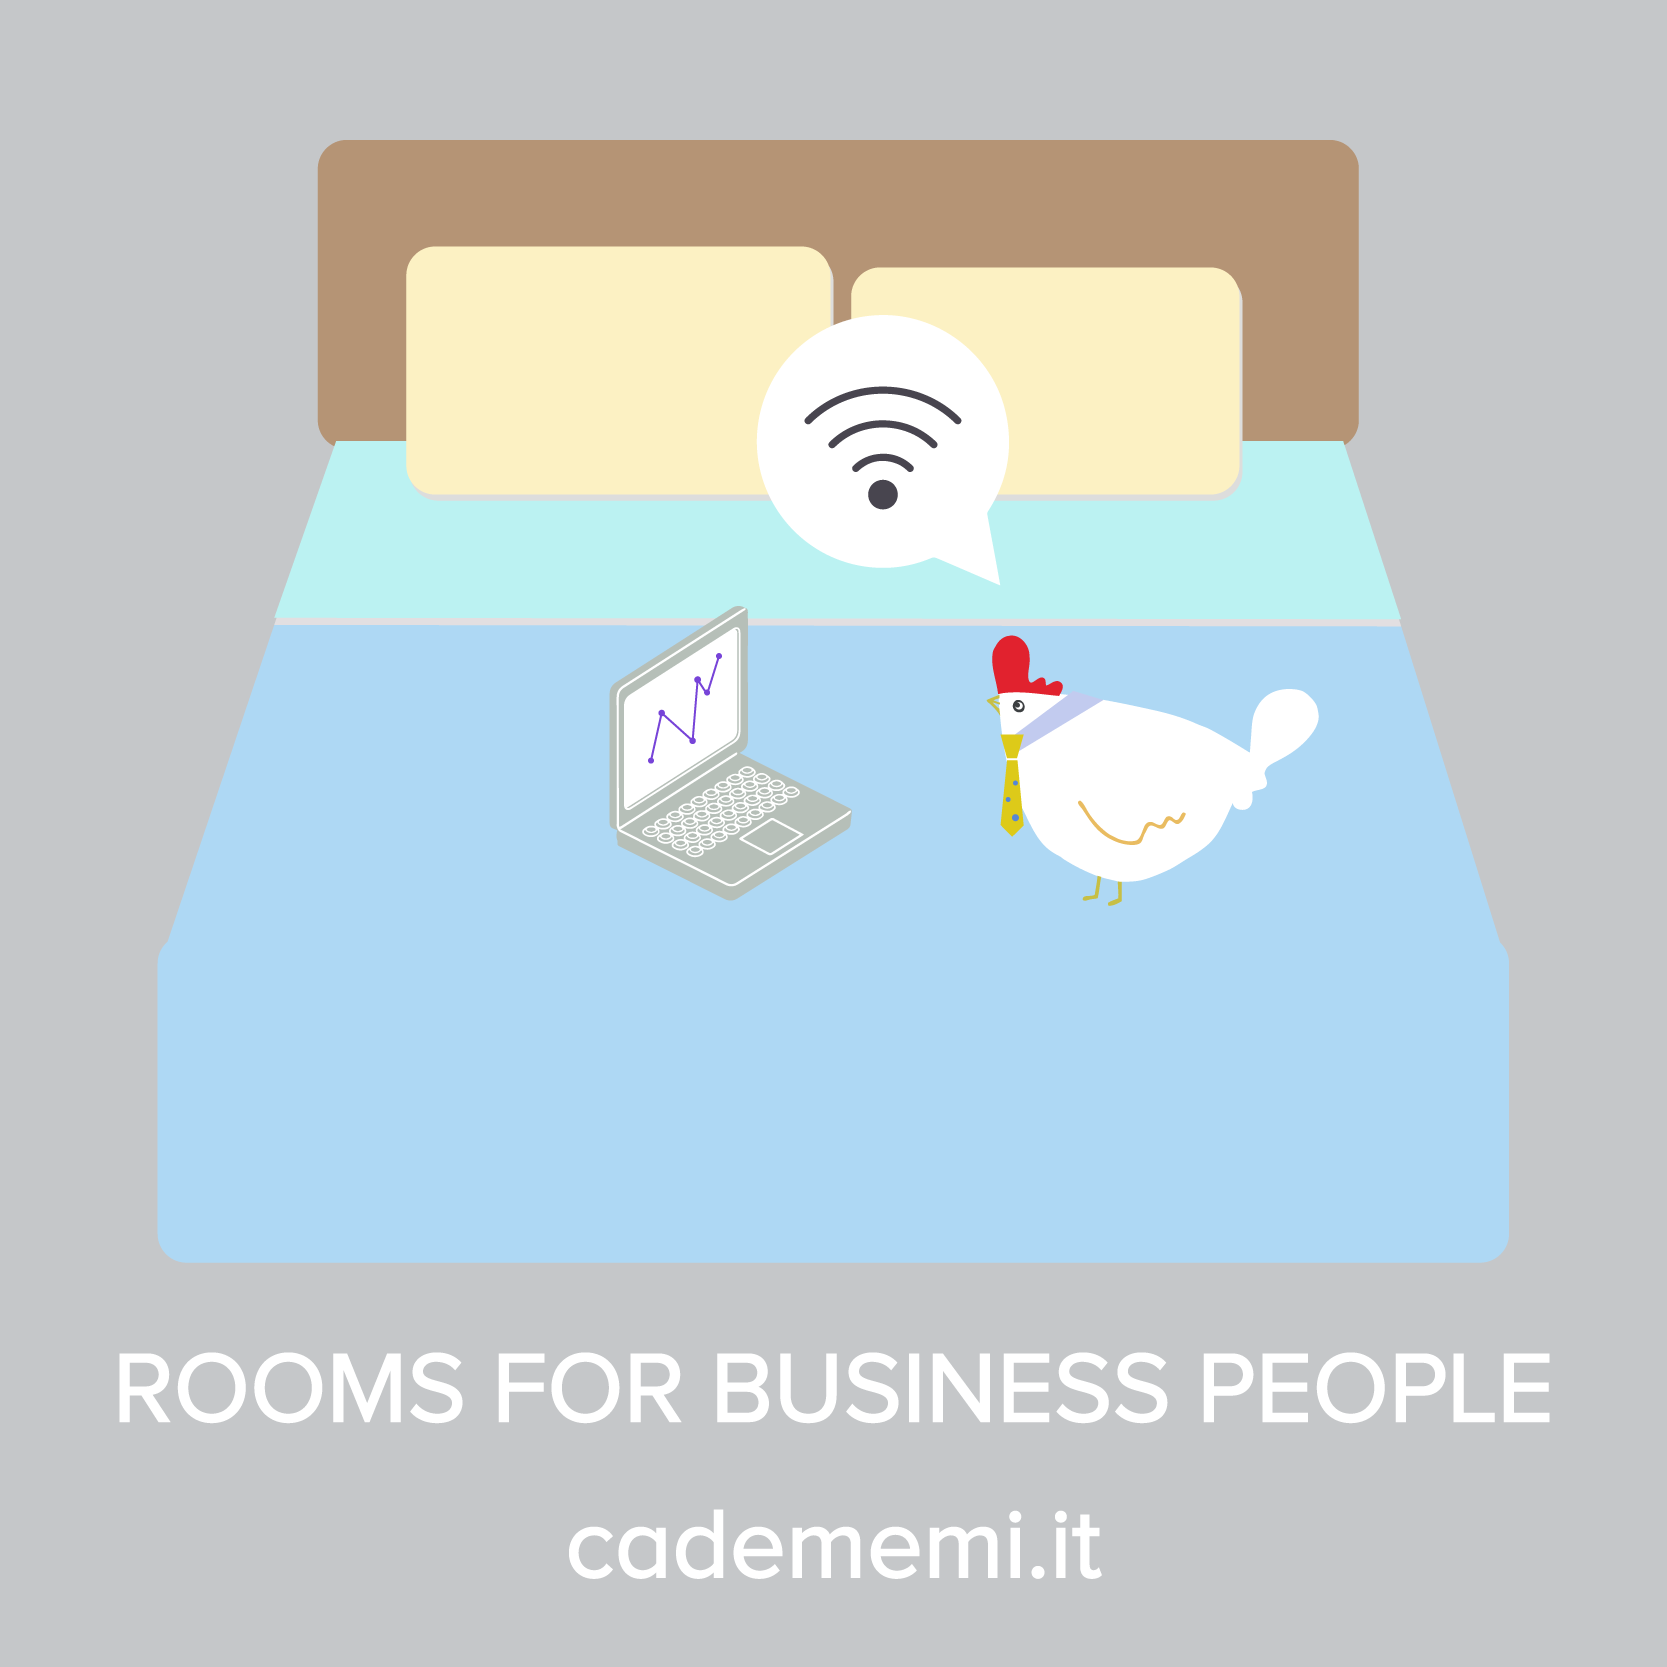 ROOMS_FOR_CADEMEMI-13.png